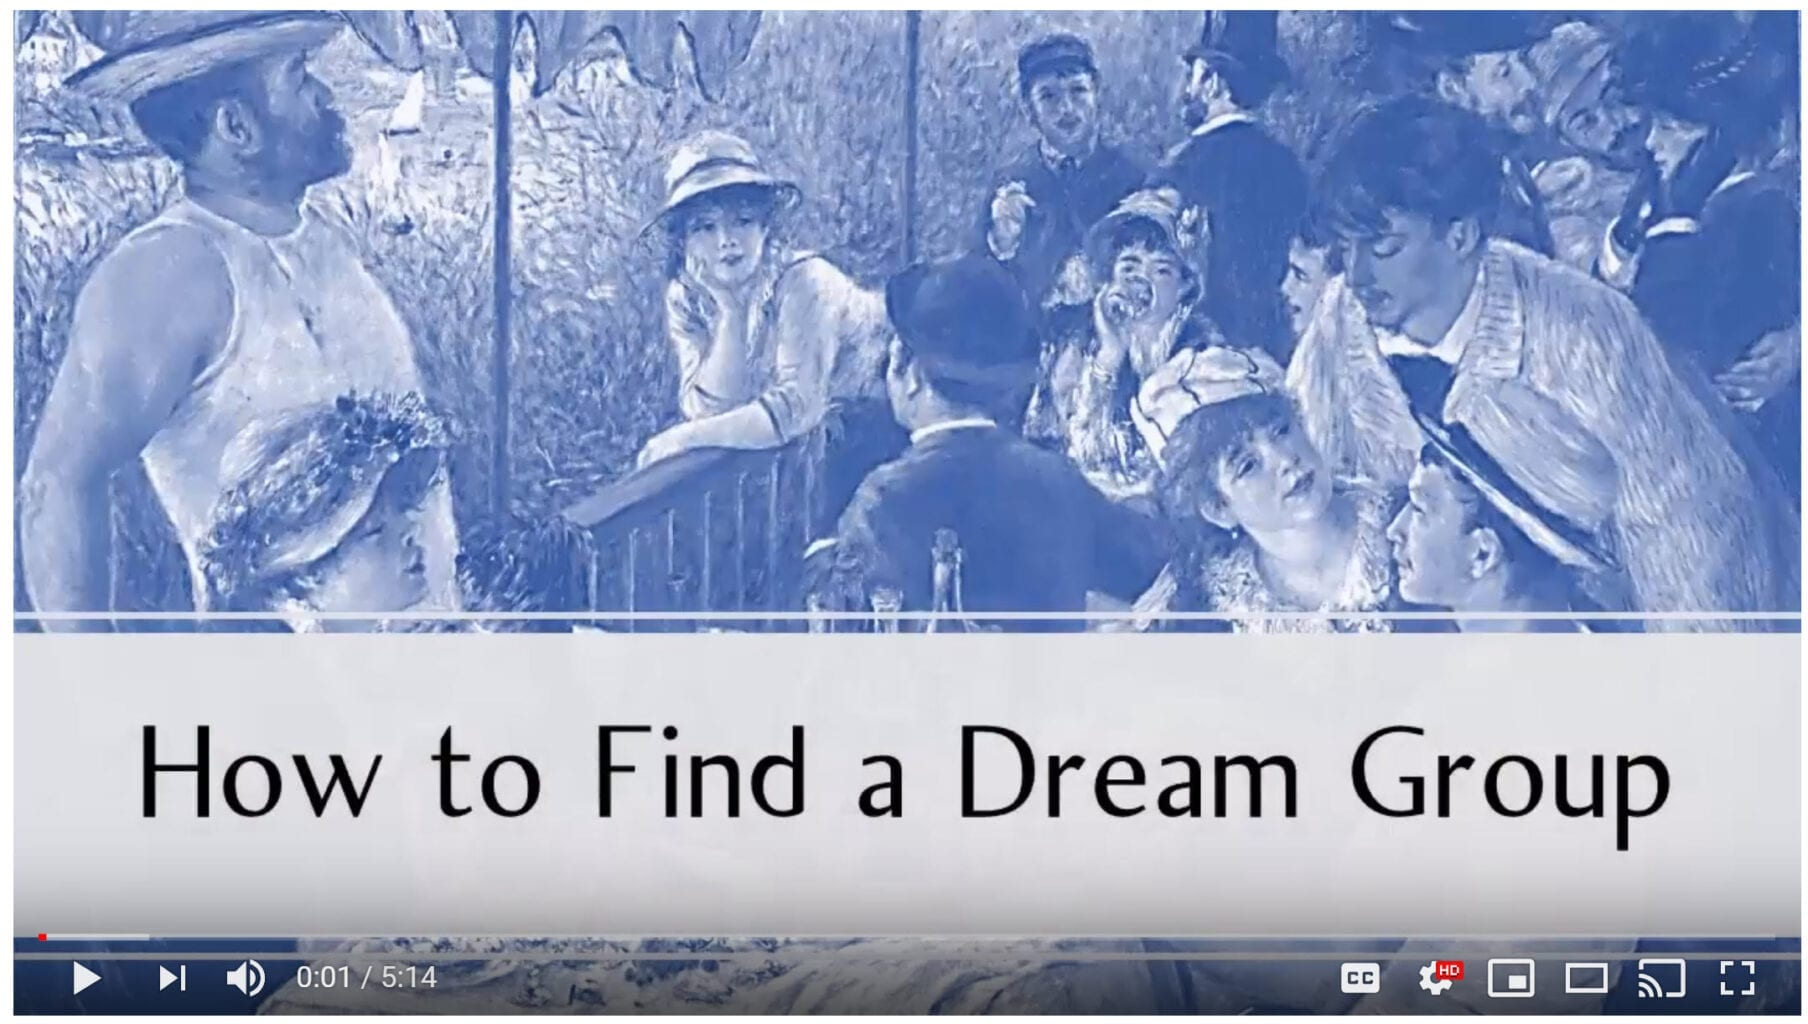 How to Find a Dream Group – [Dream Video]